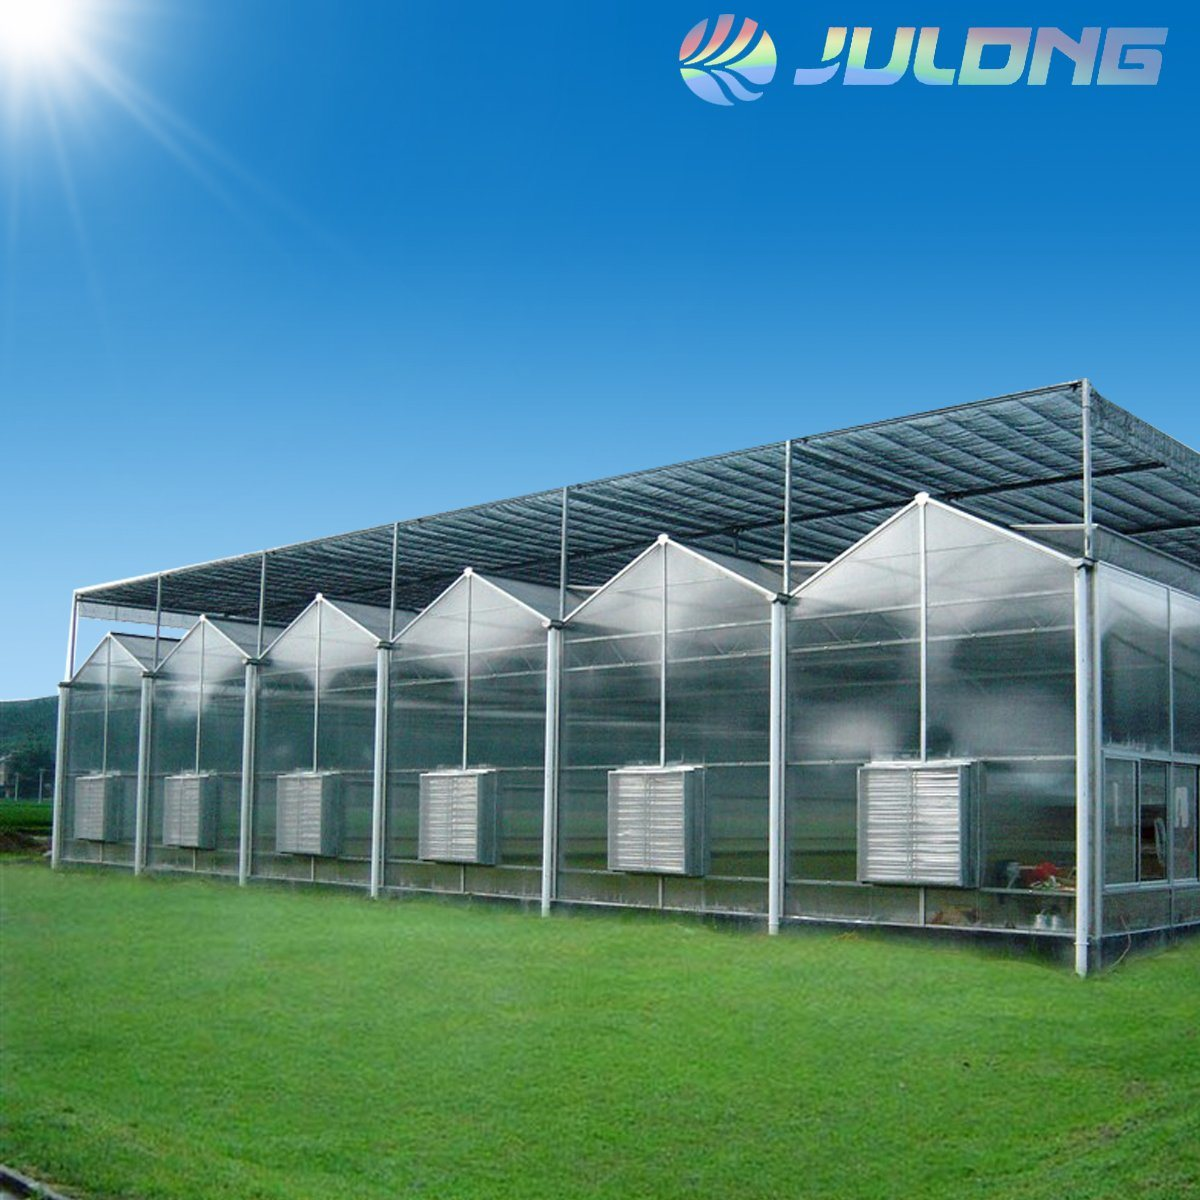 [Hot Item] 2019 Commercial Used Film Greenhouse with Coco Coir Substrate